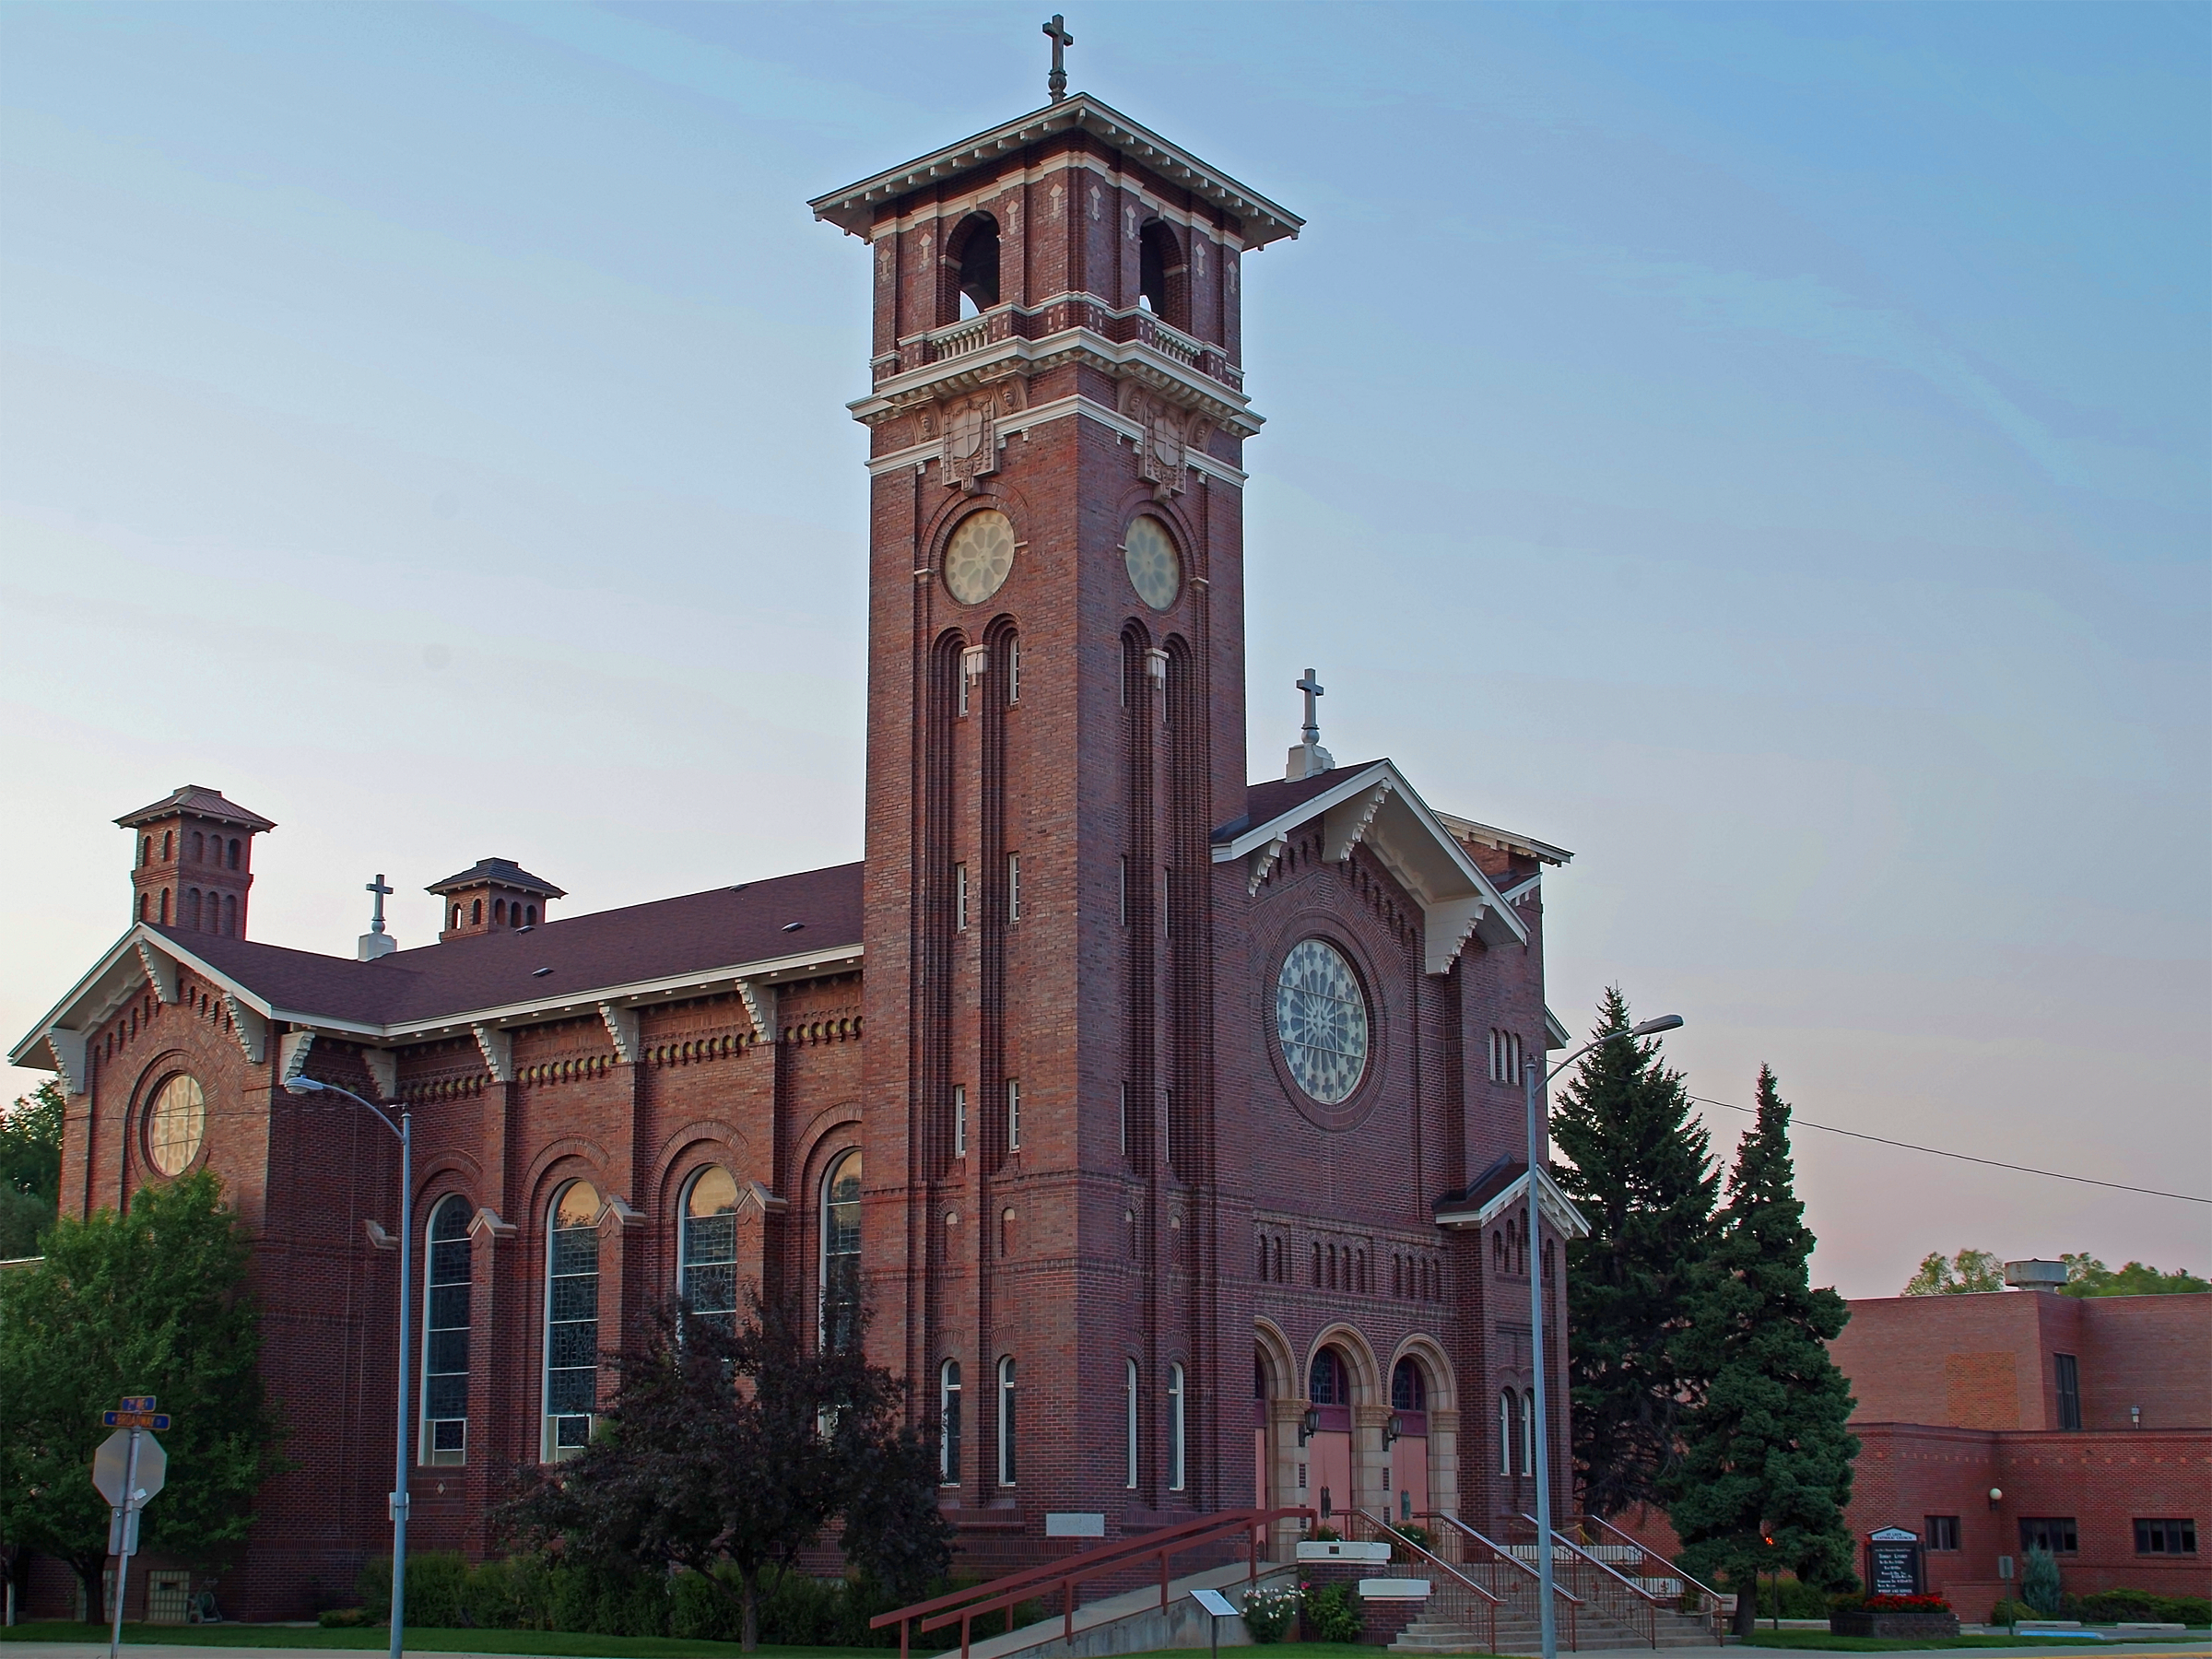 fergus county dating Fergus county, montana public records directory - quickly find public record sources in the largest human edited public record directory find property records, vital records, inmate and court records, professional and business.